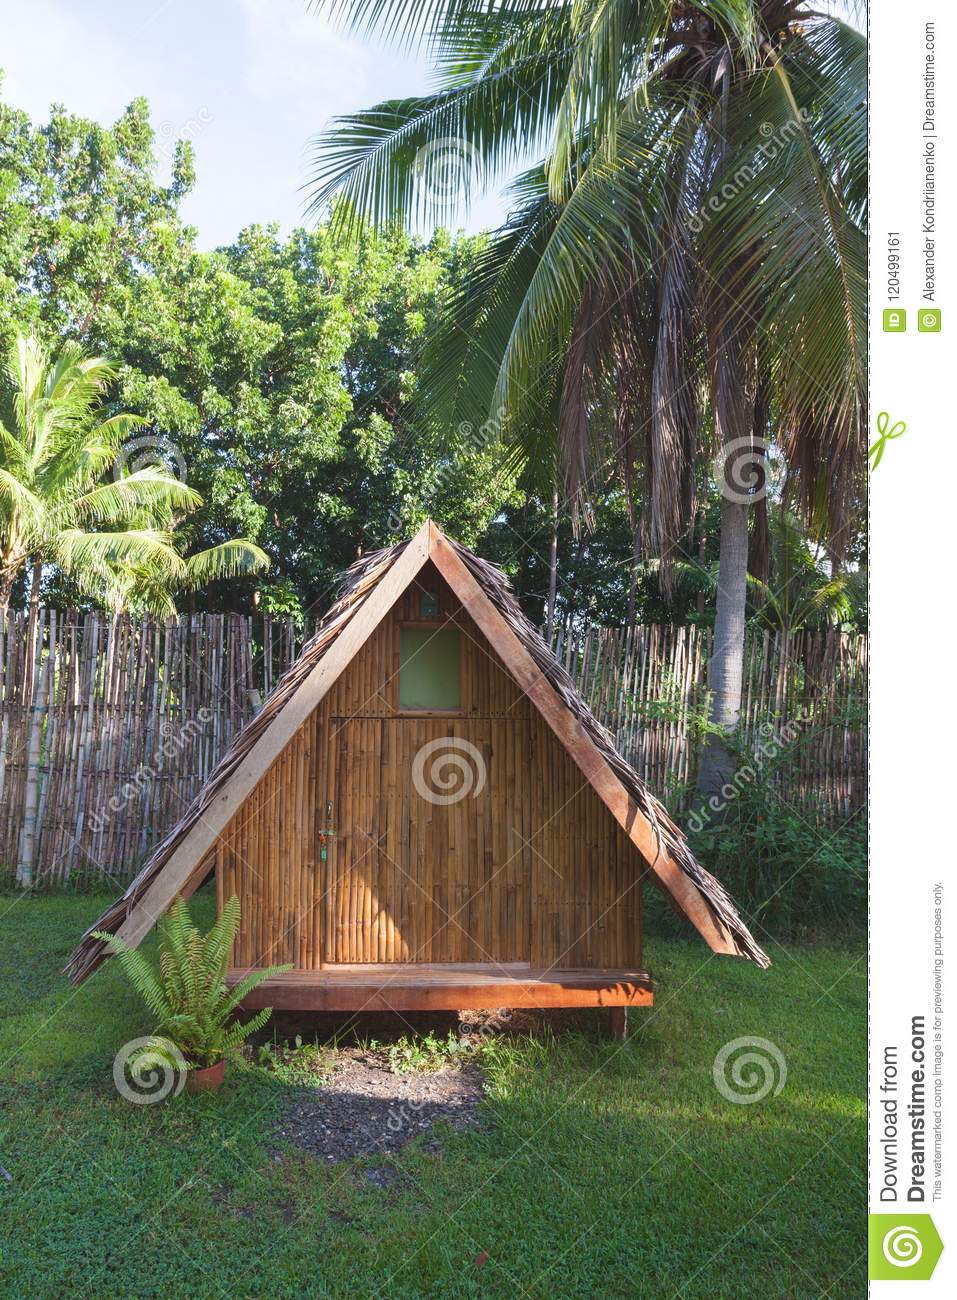 Houses made of wood. Bungalow with a roof made of palm leaves against the backdrop of a fence of bamboo and palm trees.